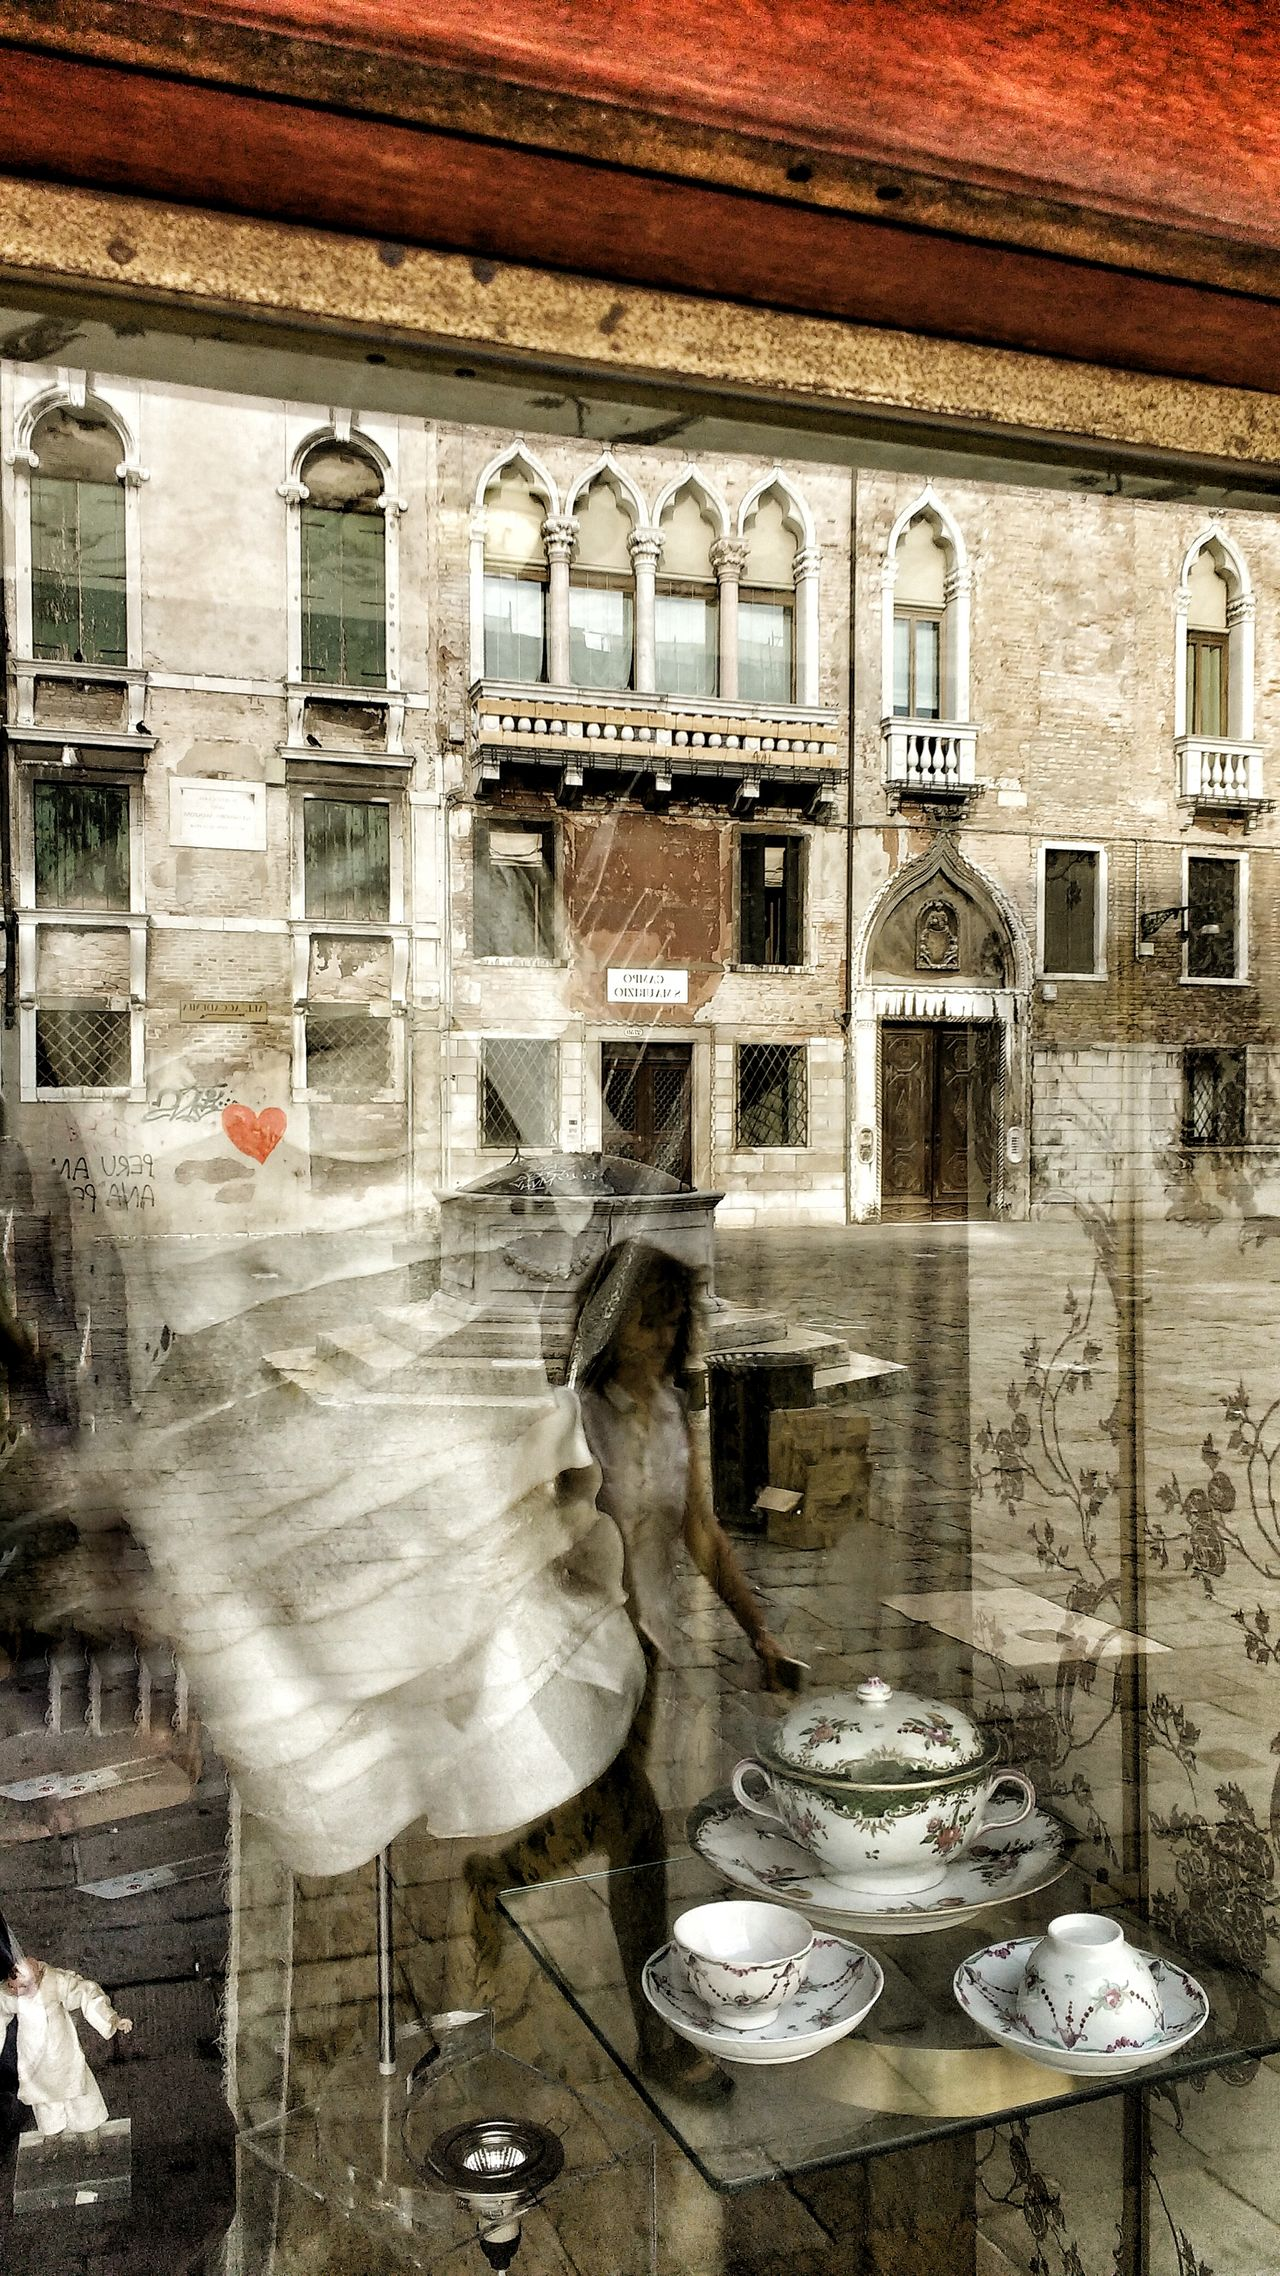 Architectural Column Architecture Bad Condition Body Part Building Built Structure Day Deterioration Dirty Empty No People Old Run-down Shop Window Shop Window Reflection Shop Windows Statue Venice, Italy Wood - Material